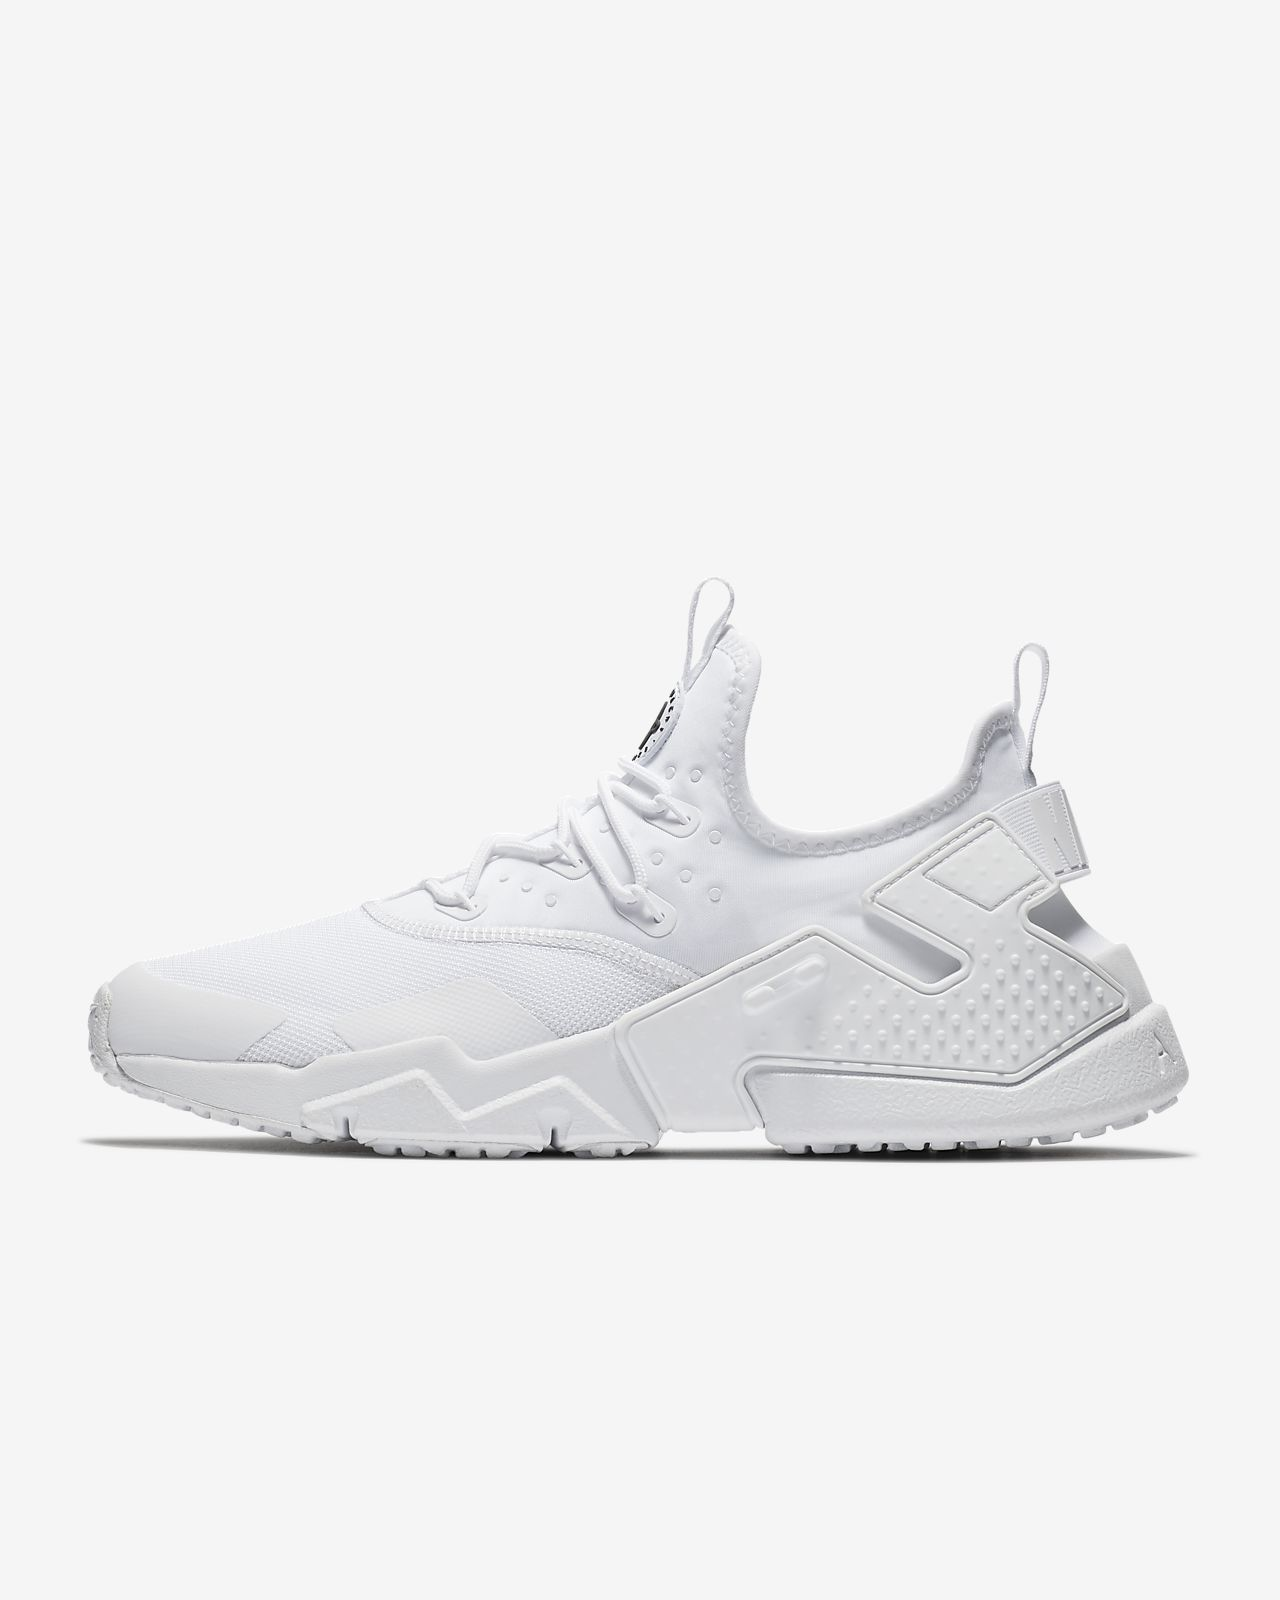 c755567c921 Nike Air Huarache Drift Men s Shoe. Nike.com